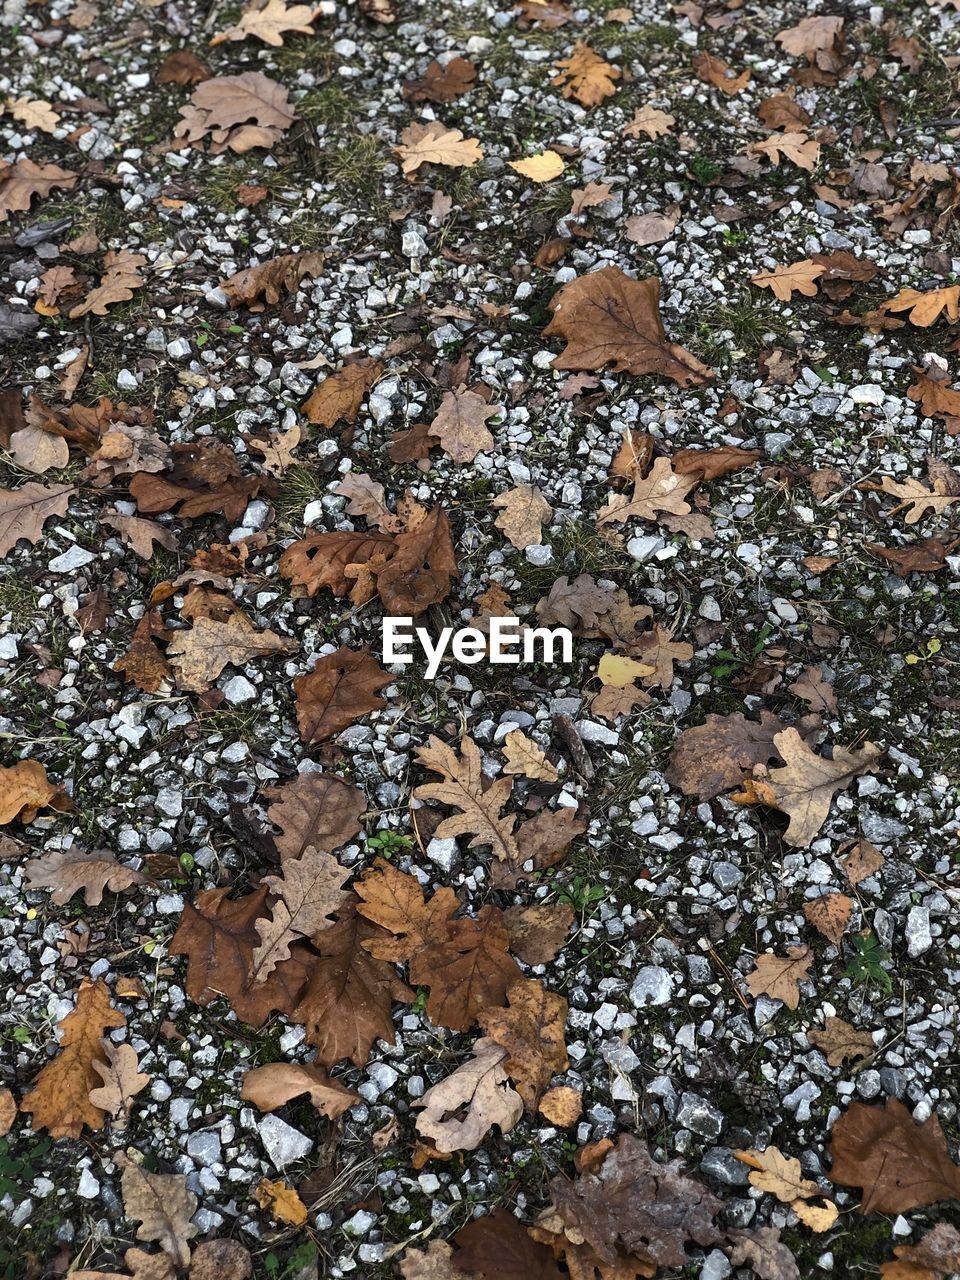 no people, day, full frame, nature, plant, growth, leaf, high angle view, plant part, close-up, directly above, field, lichen, beauty in nature, land, dry, brown, tree, fungus, outdoors, leaves